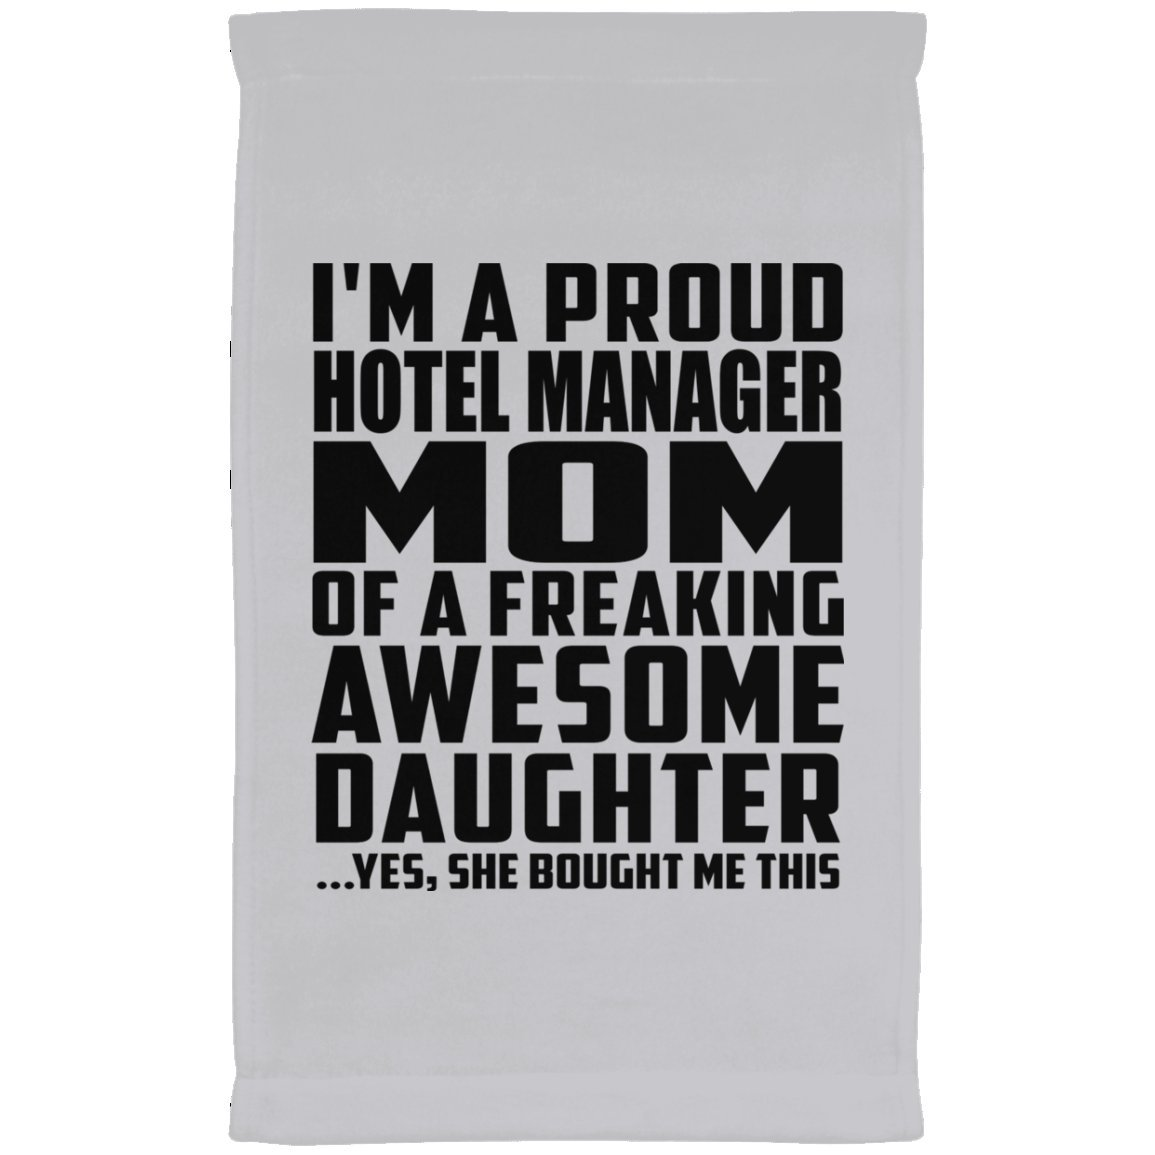 Designsify Mom Towel, I'm A Proud Hotel Manager Mom of A Freaking Awesome Daughter, She Bought Me This - Kitchen Towel, Microfiber Velour Towel, Best Gift for Mother Mom from Daughter Kid